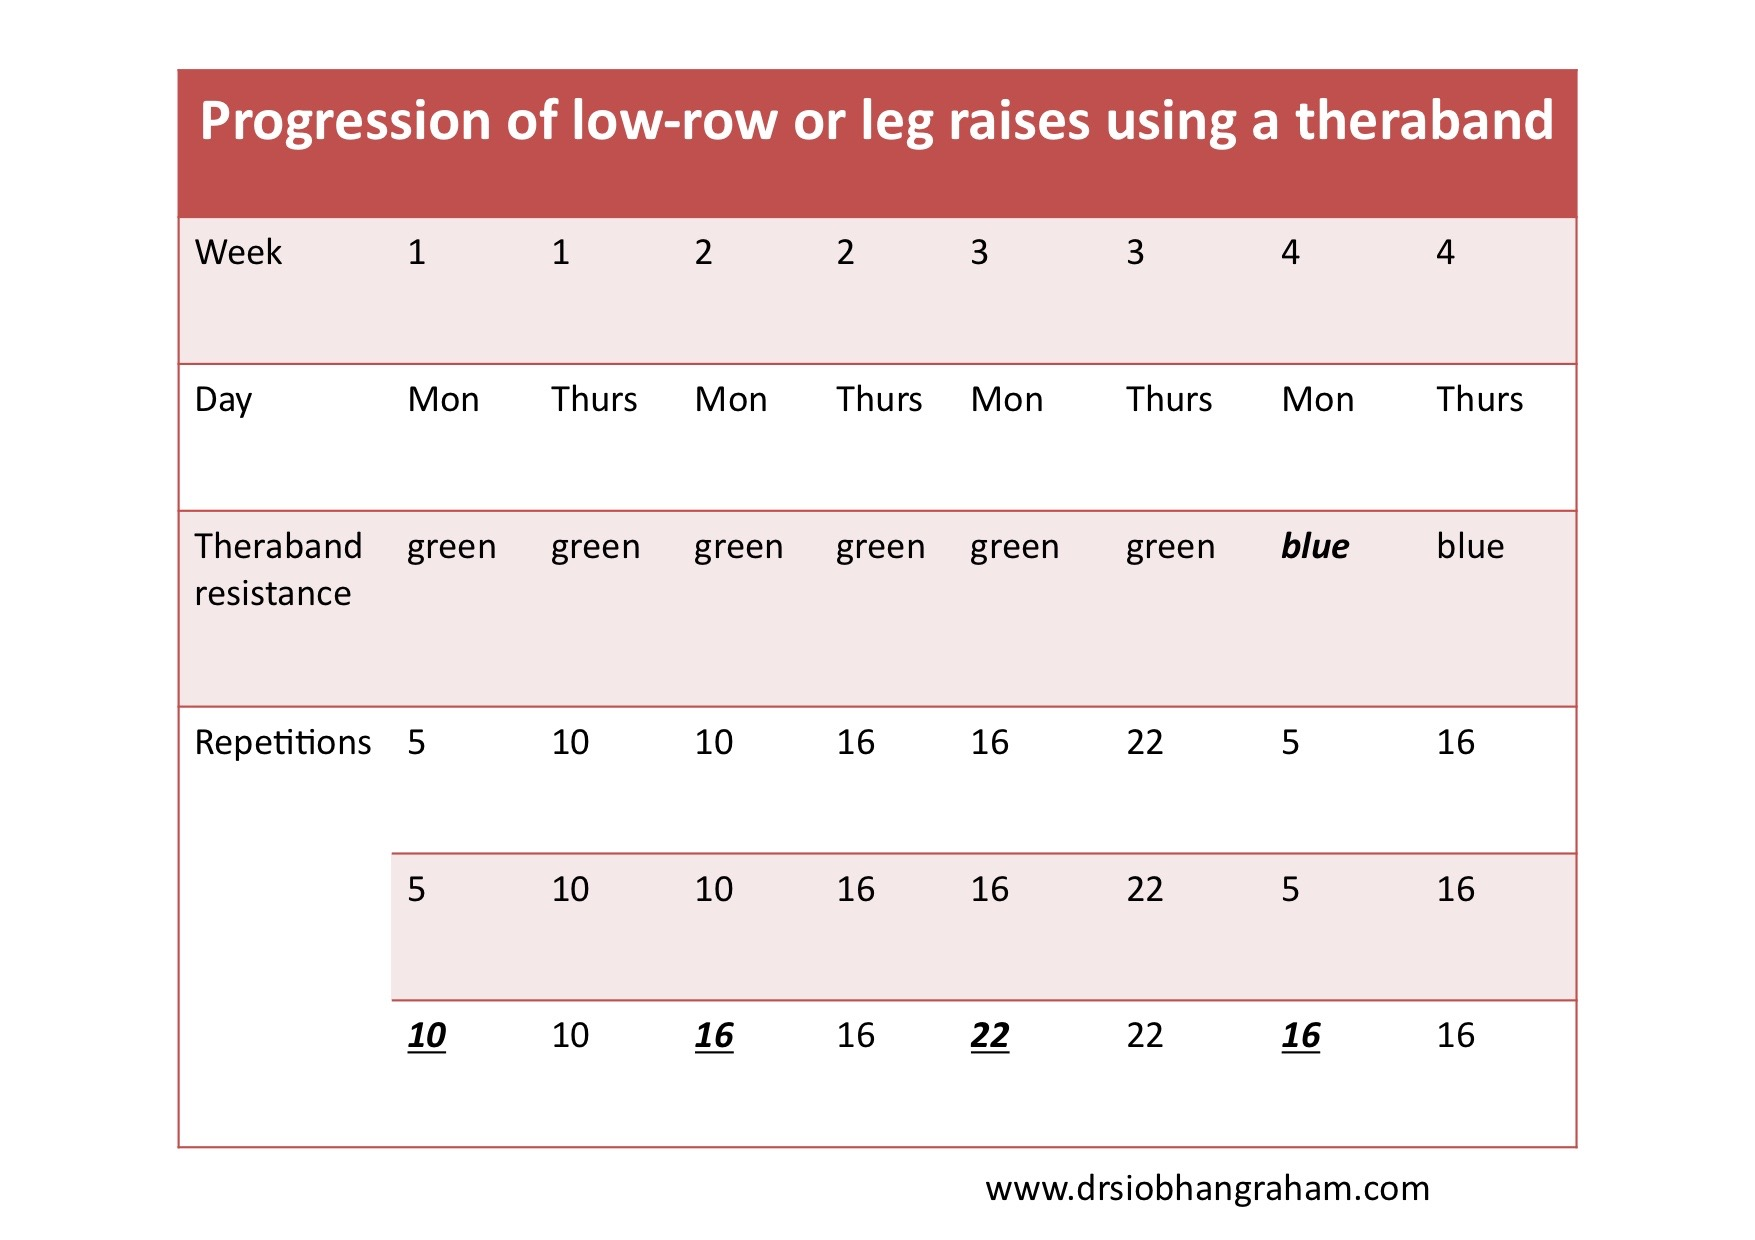 Table 4. Progression of exercises using an exercise band (Theraband)